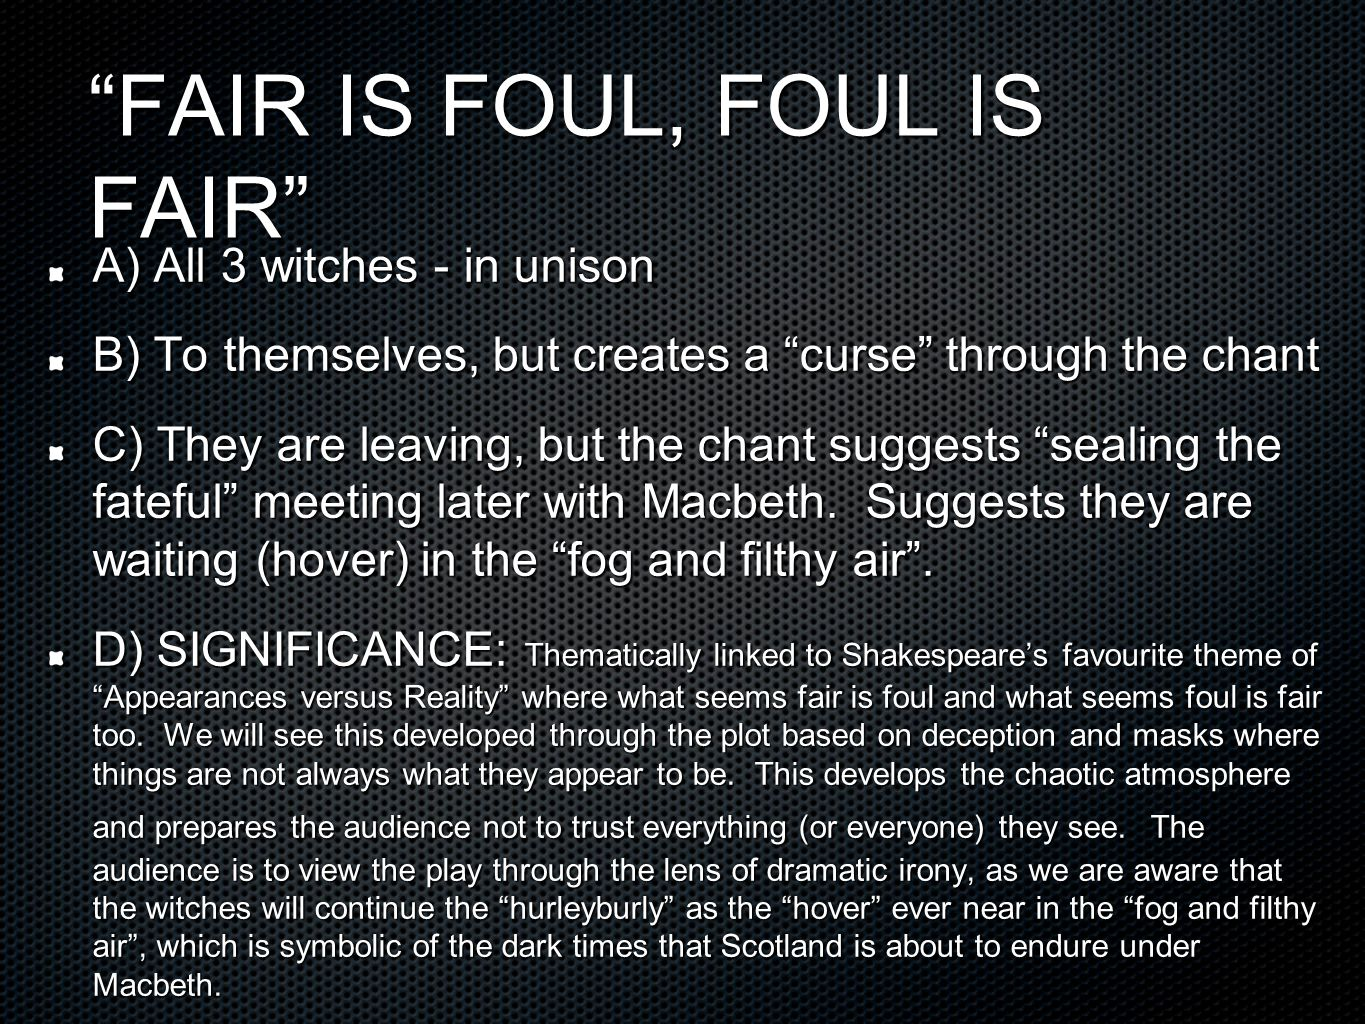 FAIR IS FOUL, FOUL IS FAIR A) All 3 witches - in unison B) To themselves, but creates a curse through the chant C) They are leaving, but the chant suggests sealing the fateful meeting later with Macbeth.